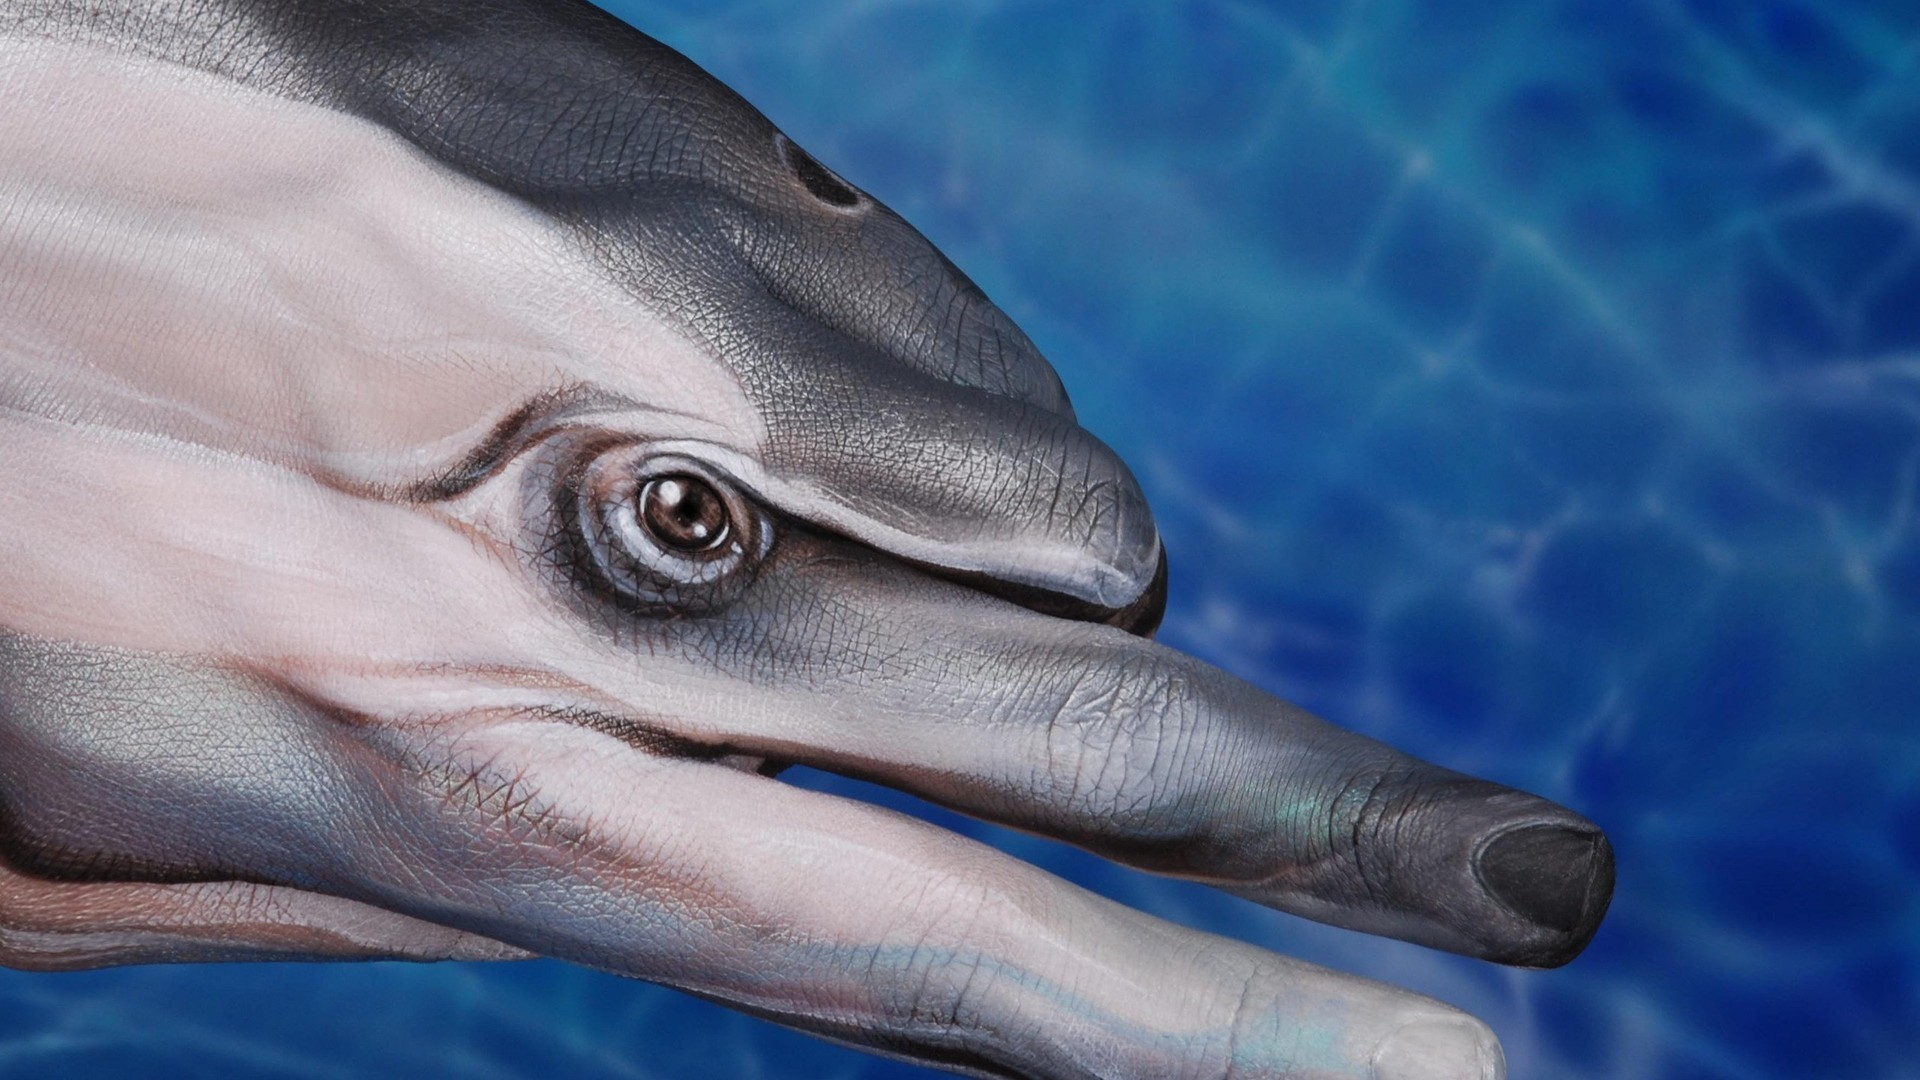 General 1920x1080 animals dolphin hands fingers body paint eyes blue water